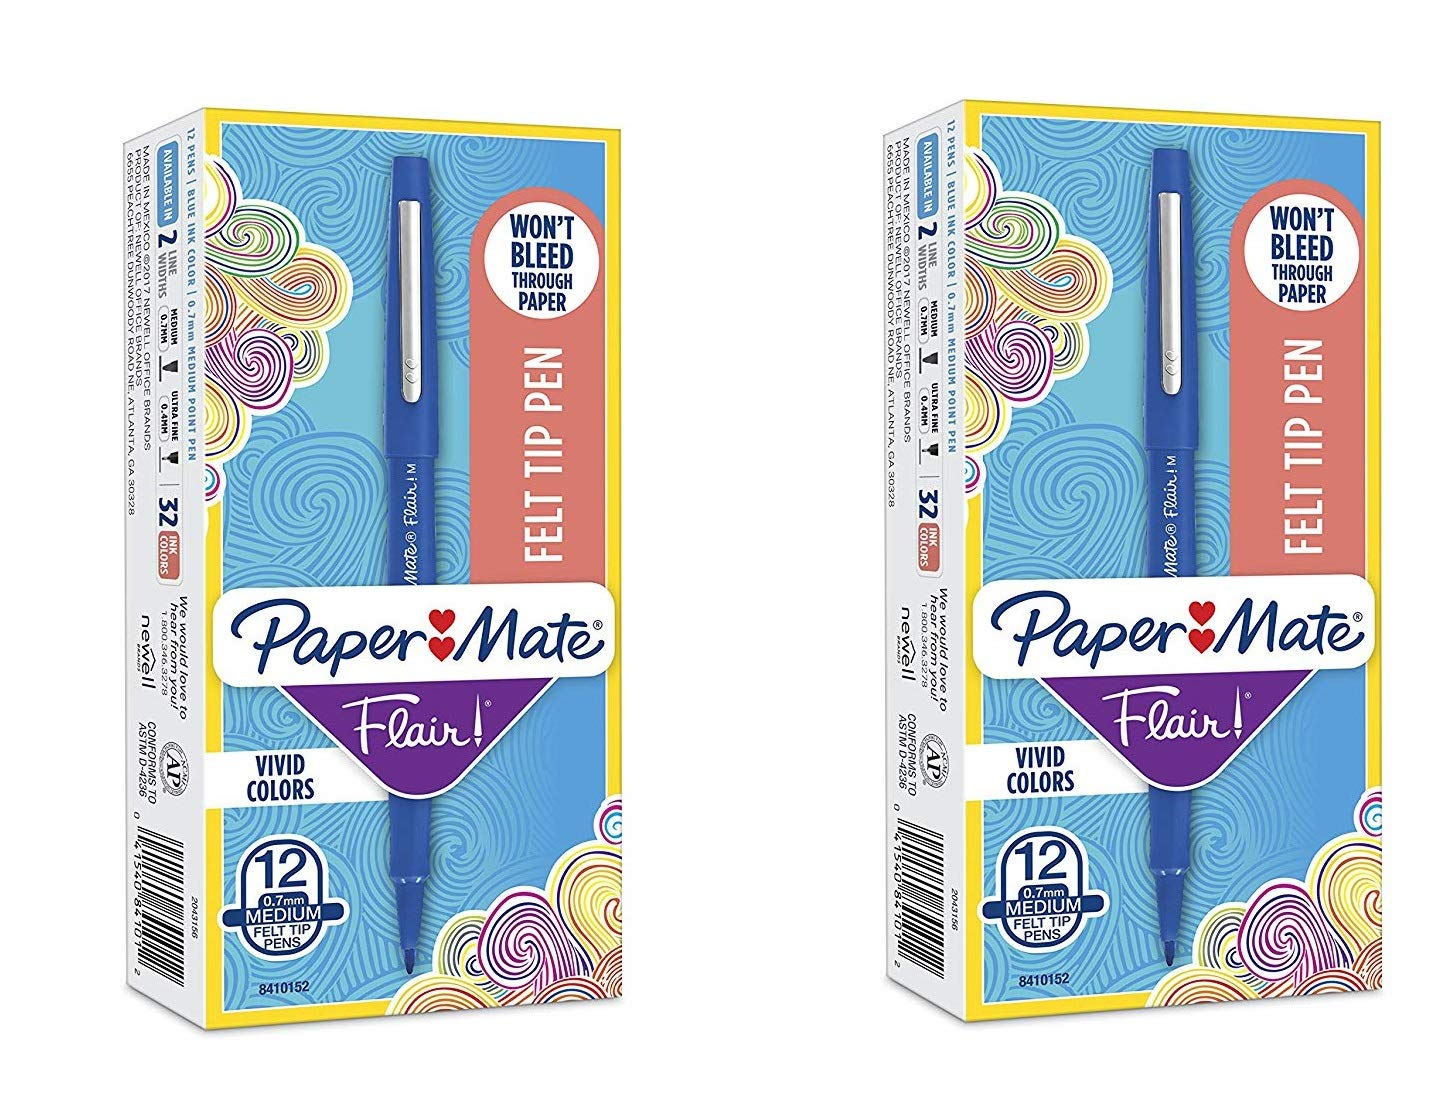 Flair Felt Tip Pens, Medium Point (0.7mm), Blue, 12 Count by Paper Mate (Image #1)